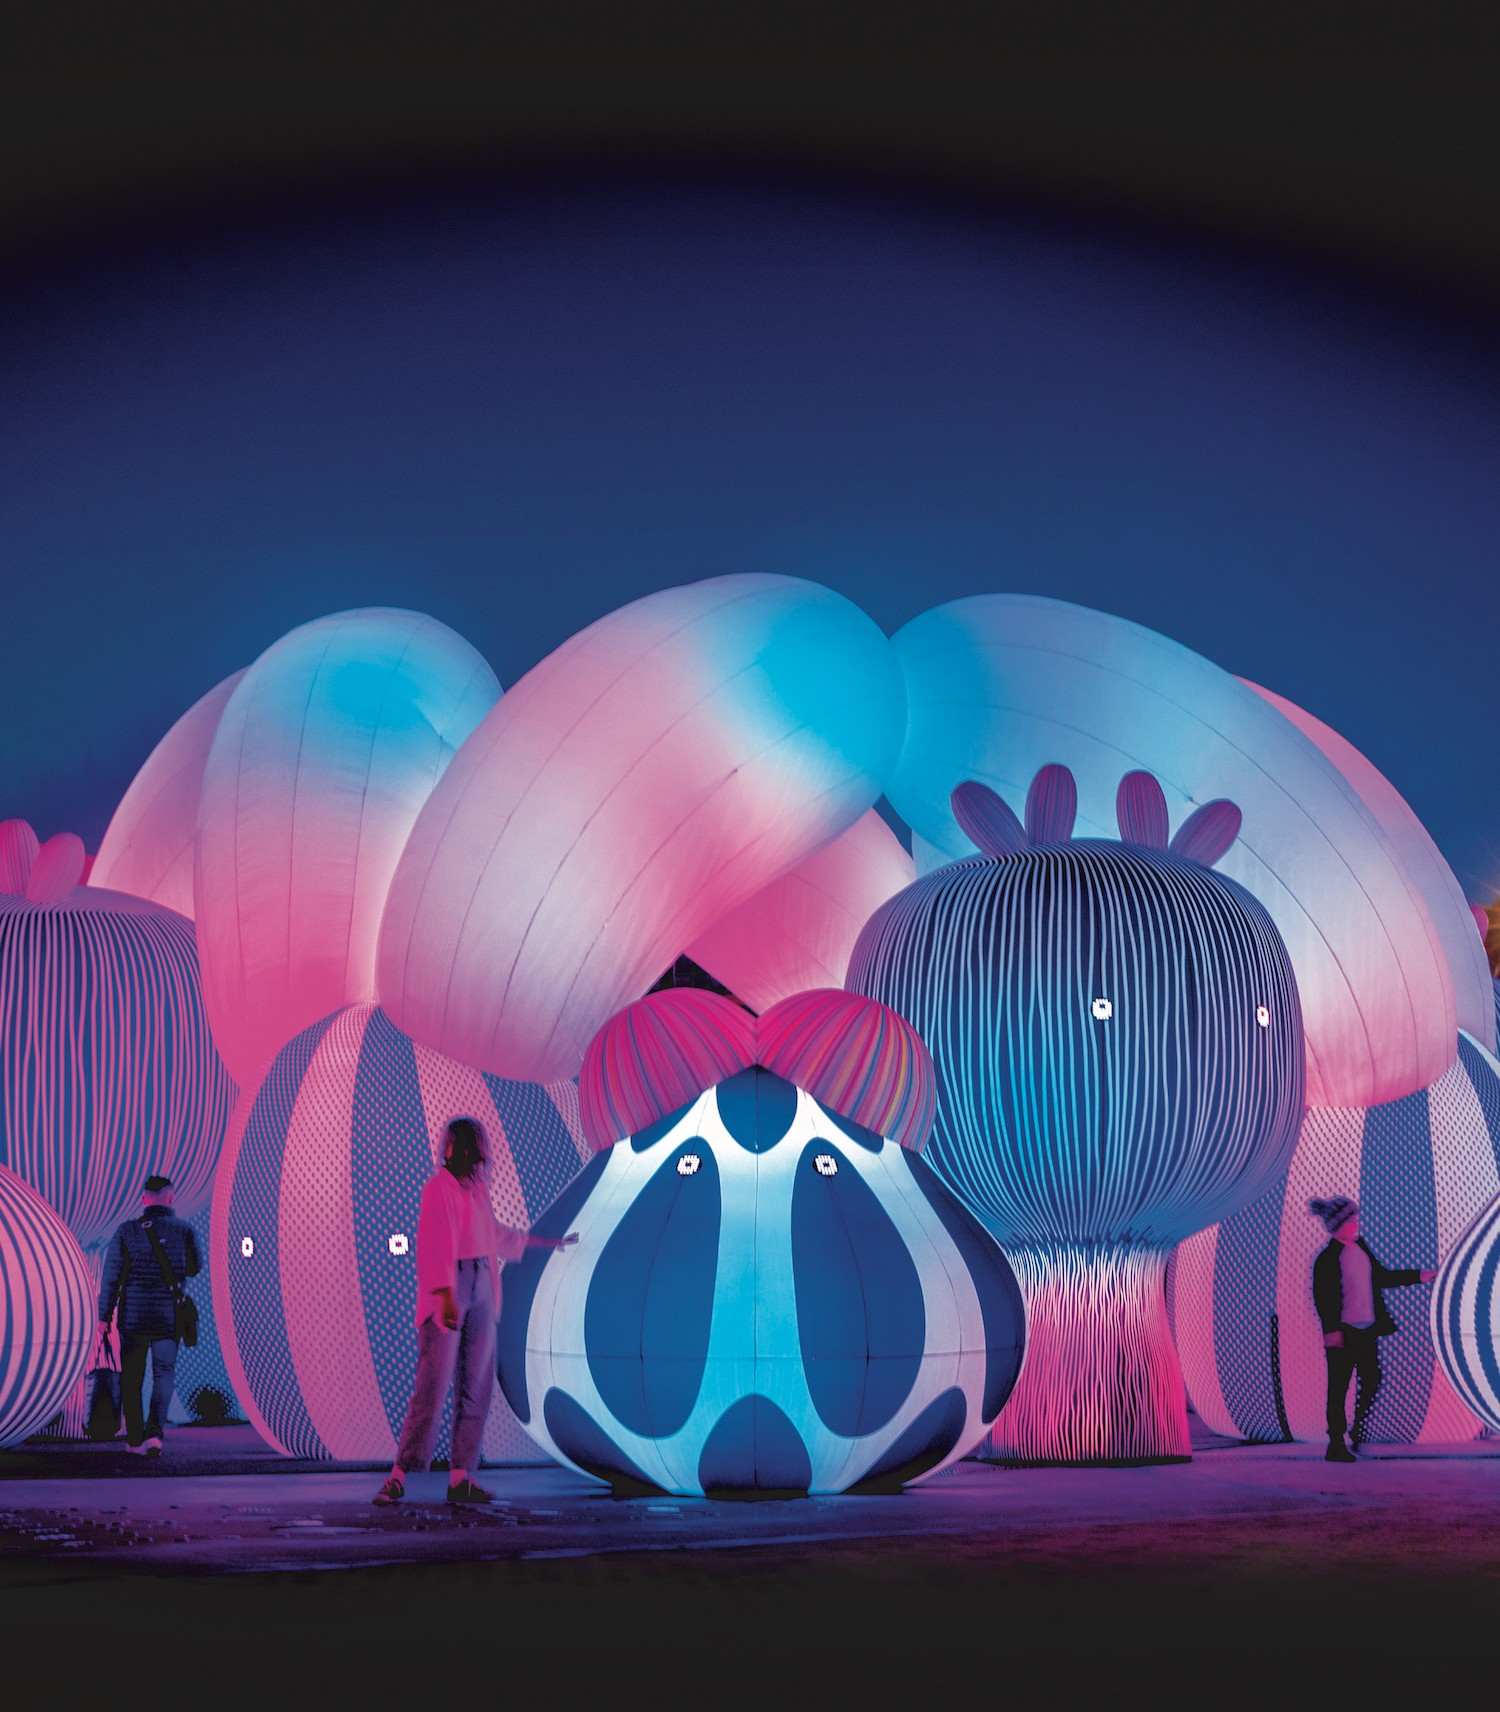 People wander through a huge colourful, inflated installation.